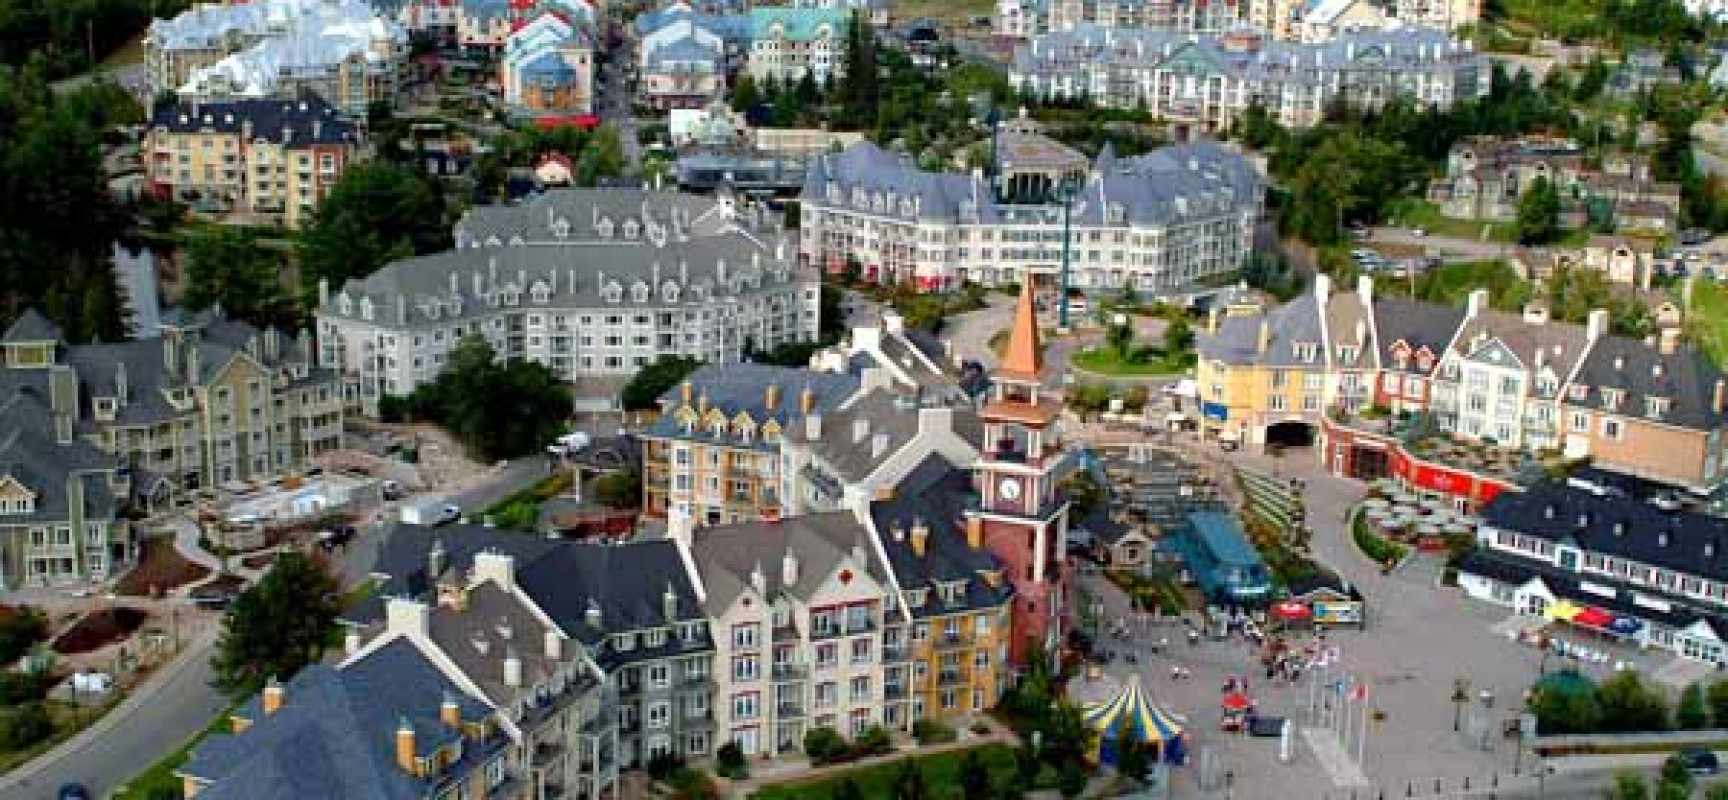 Mont Tremblant A Mountainous City In Quebec, Canada